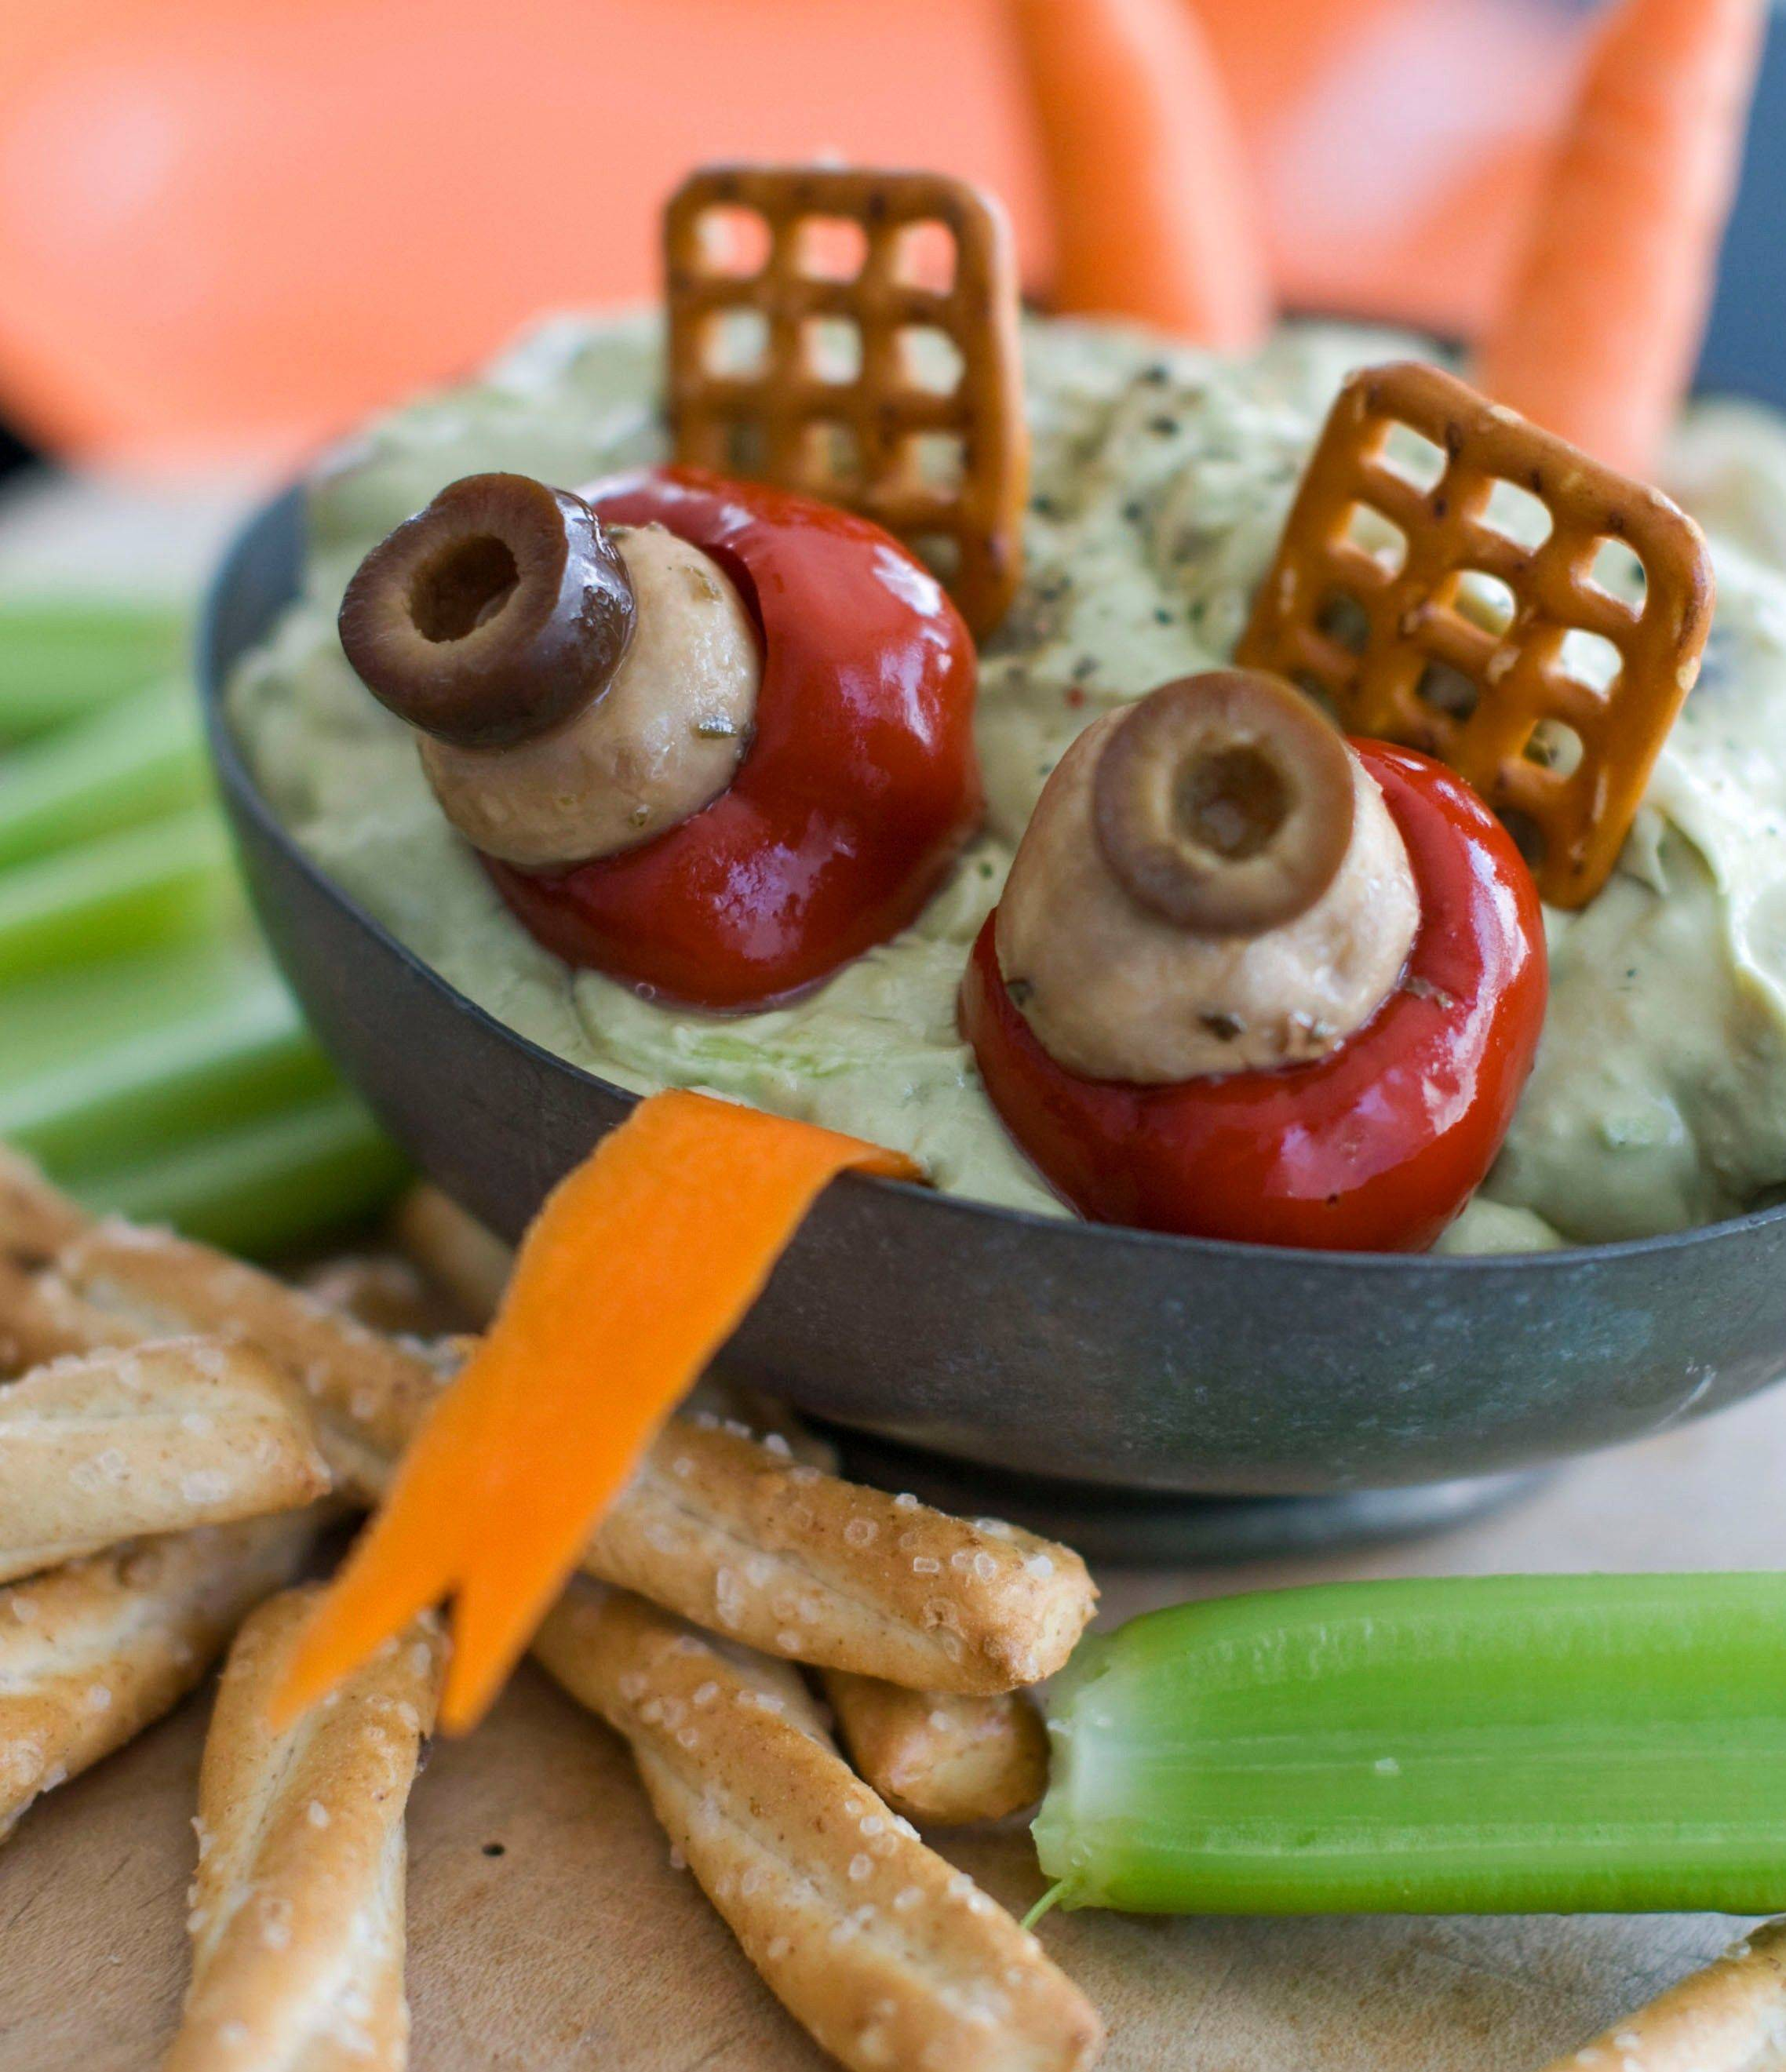 Halloween food, like this Creamy Swamp Dip, doesn't have to look pretty but should still be tasty.